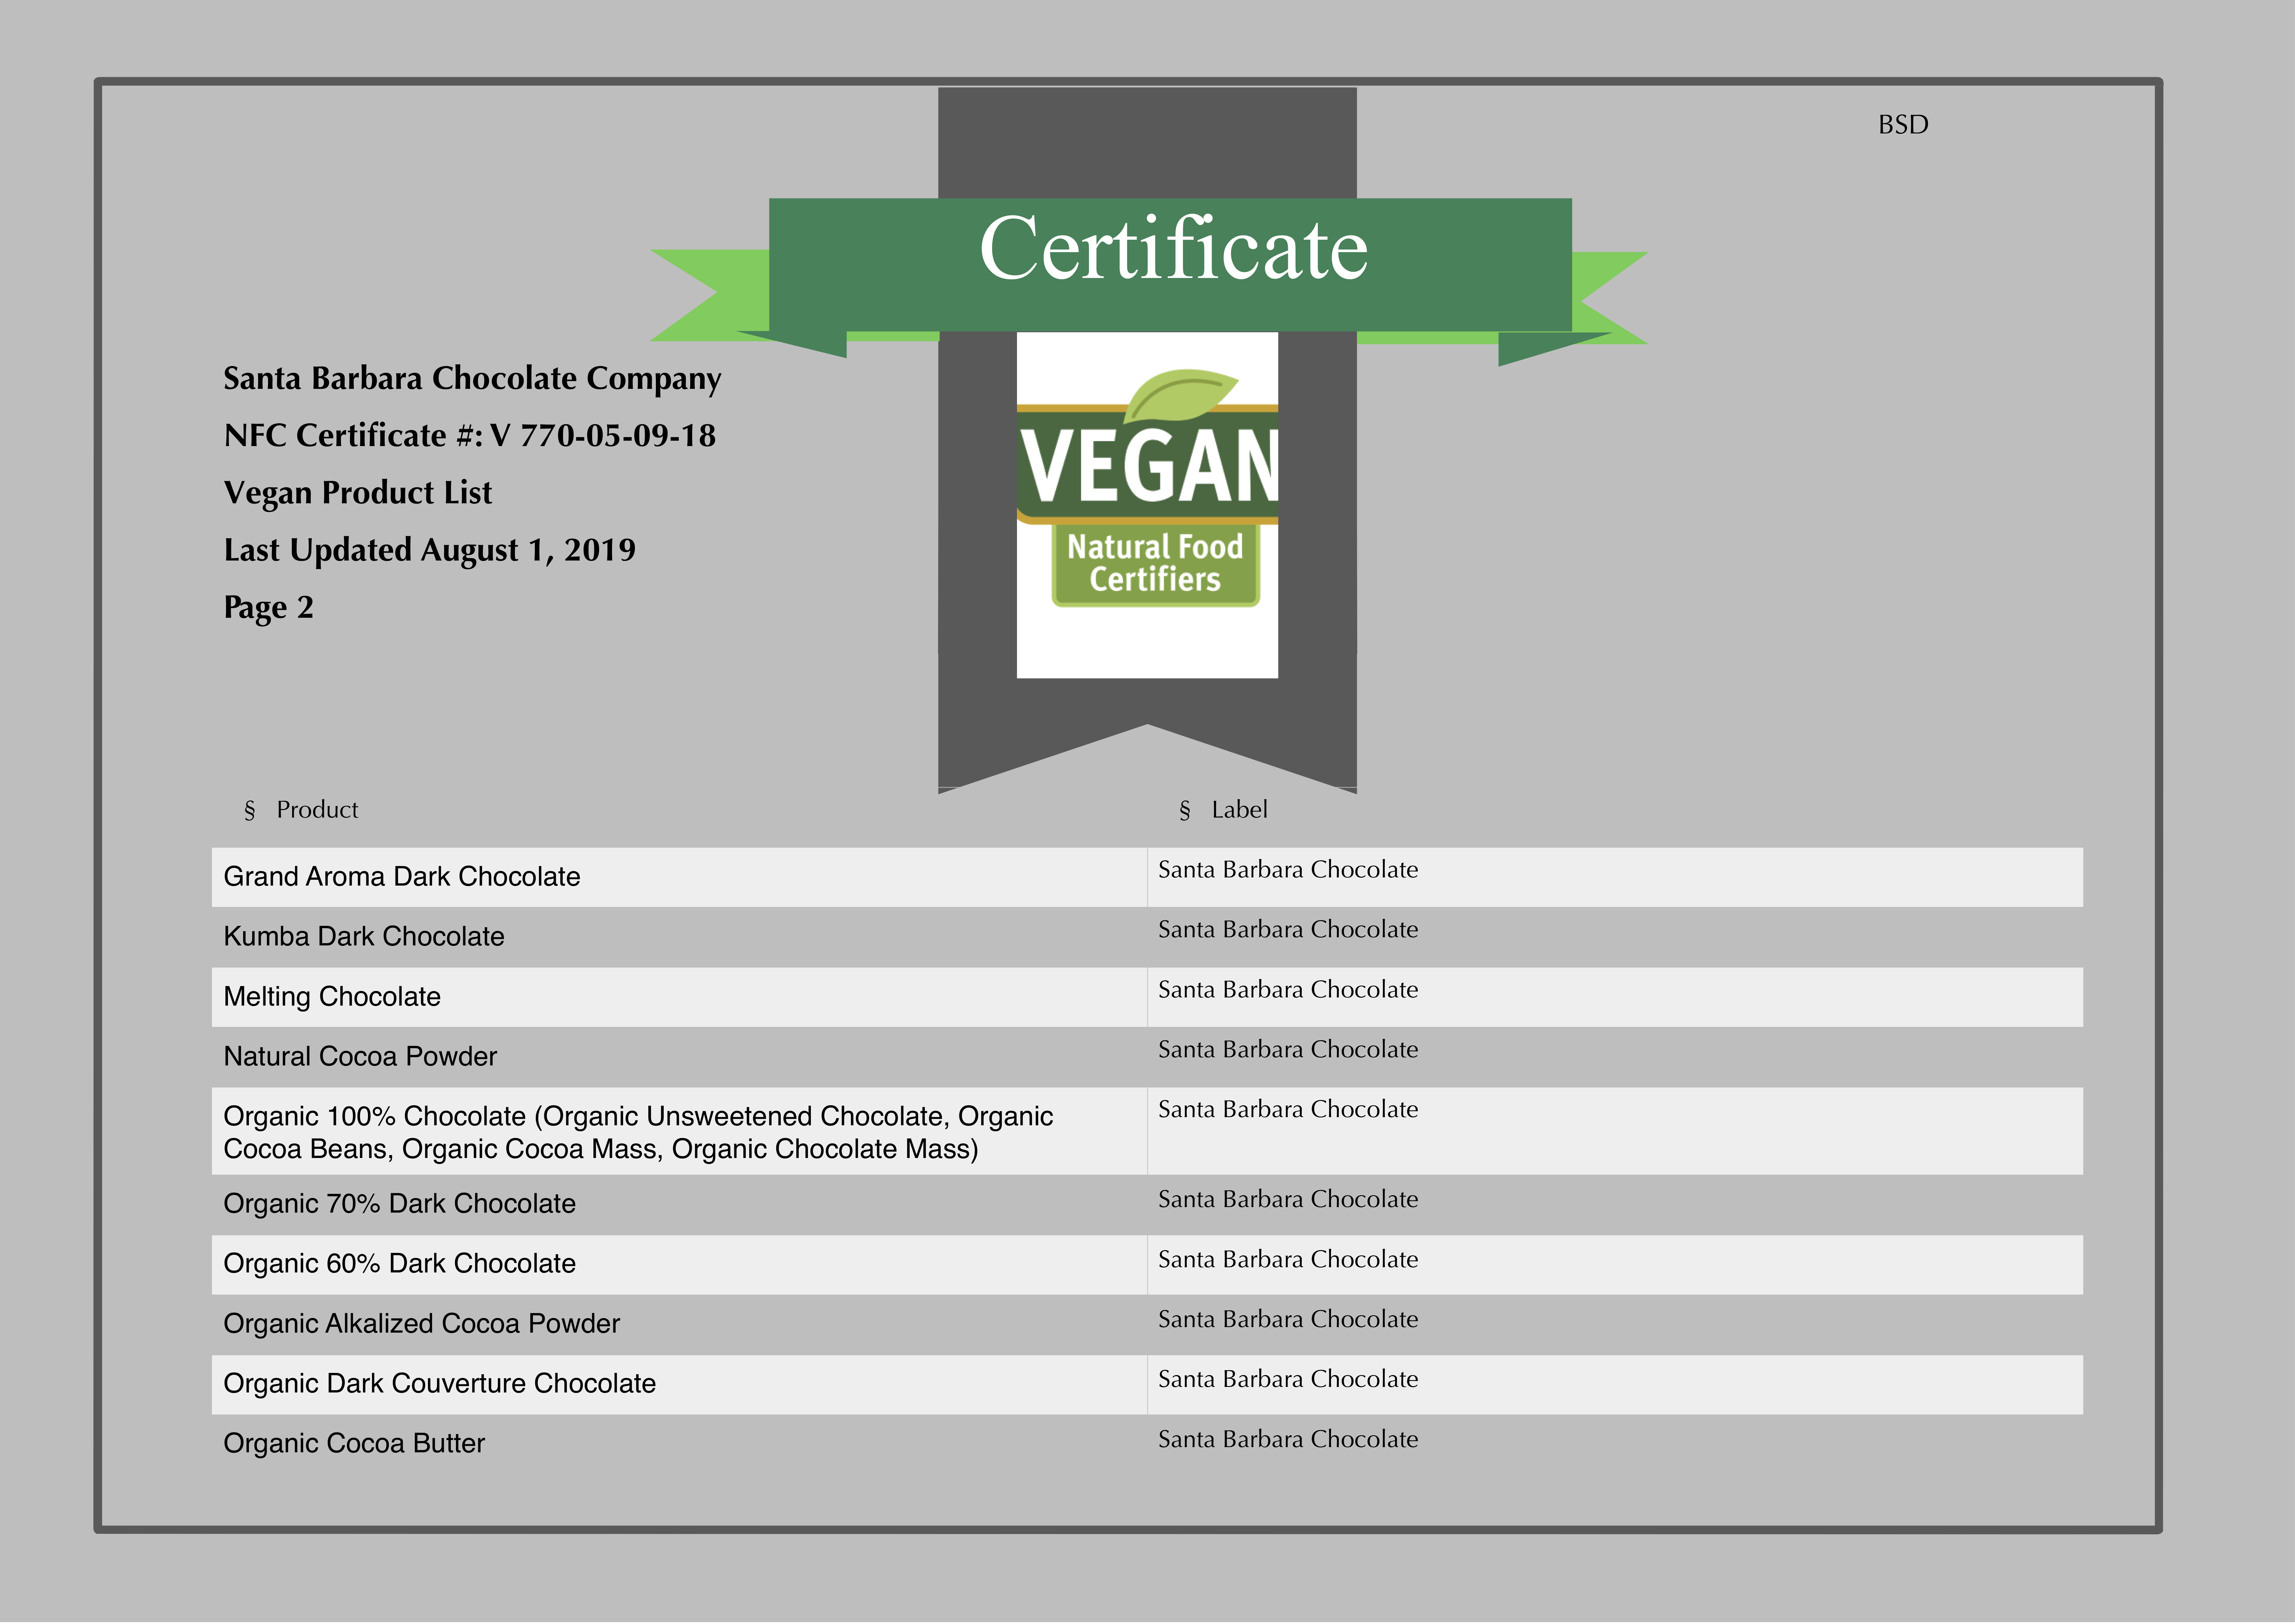 santa-barbara-chocolate-vegan-certification-2019-2020-page-3.jpg